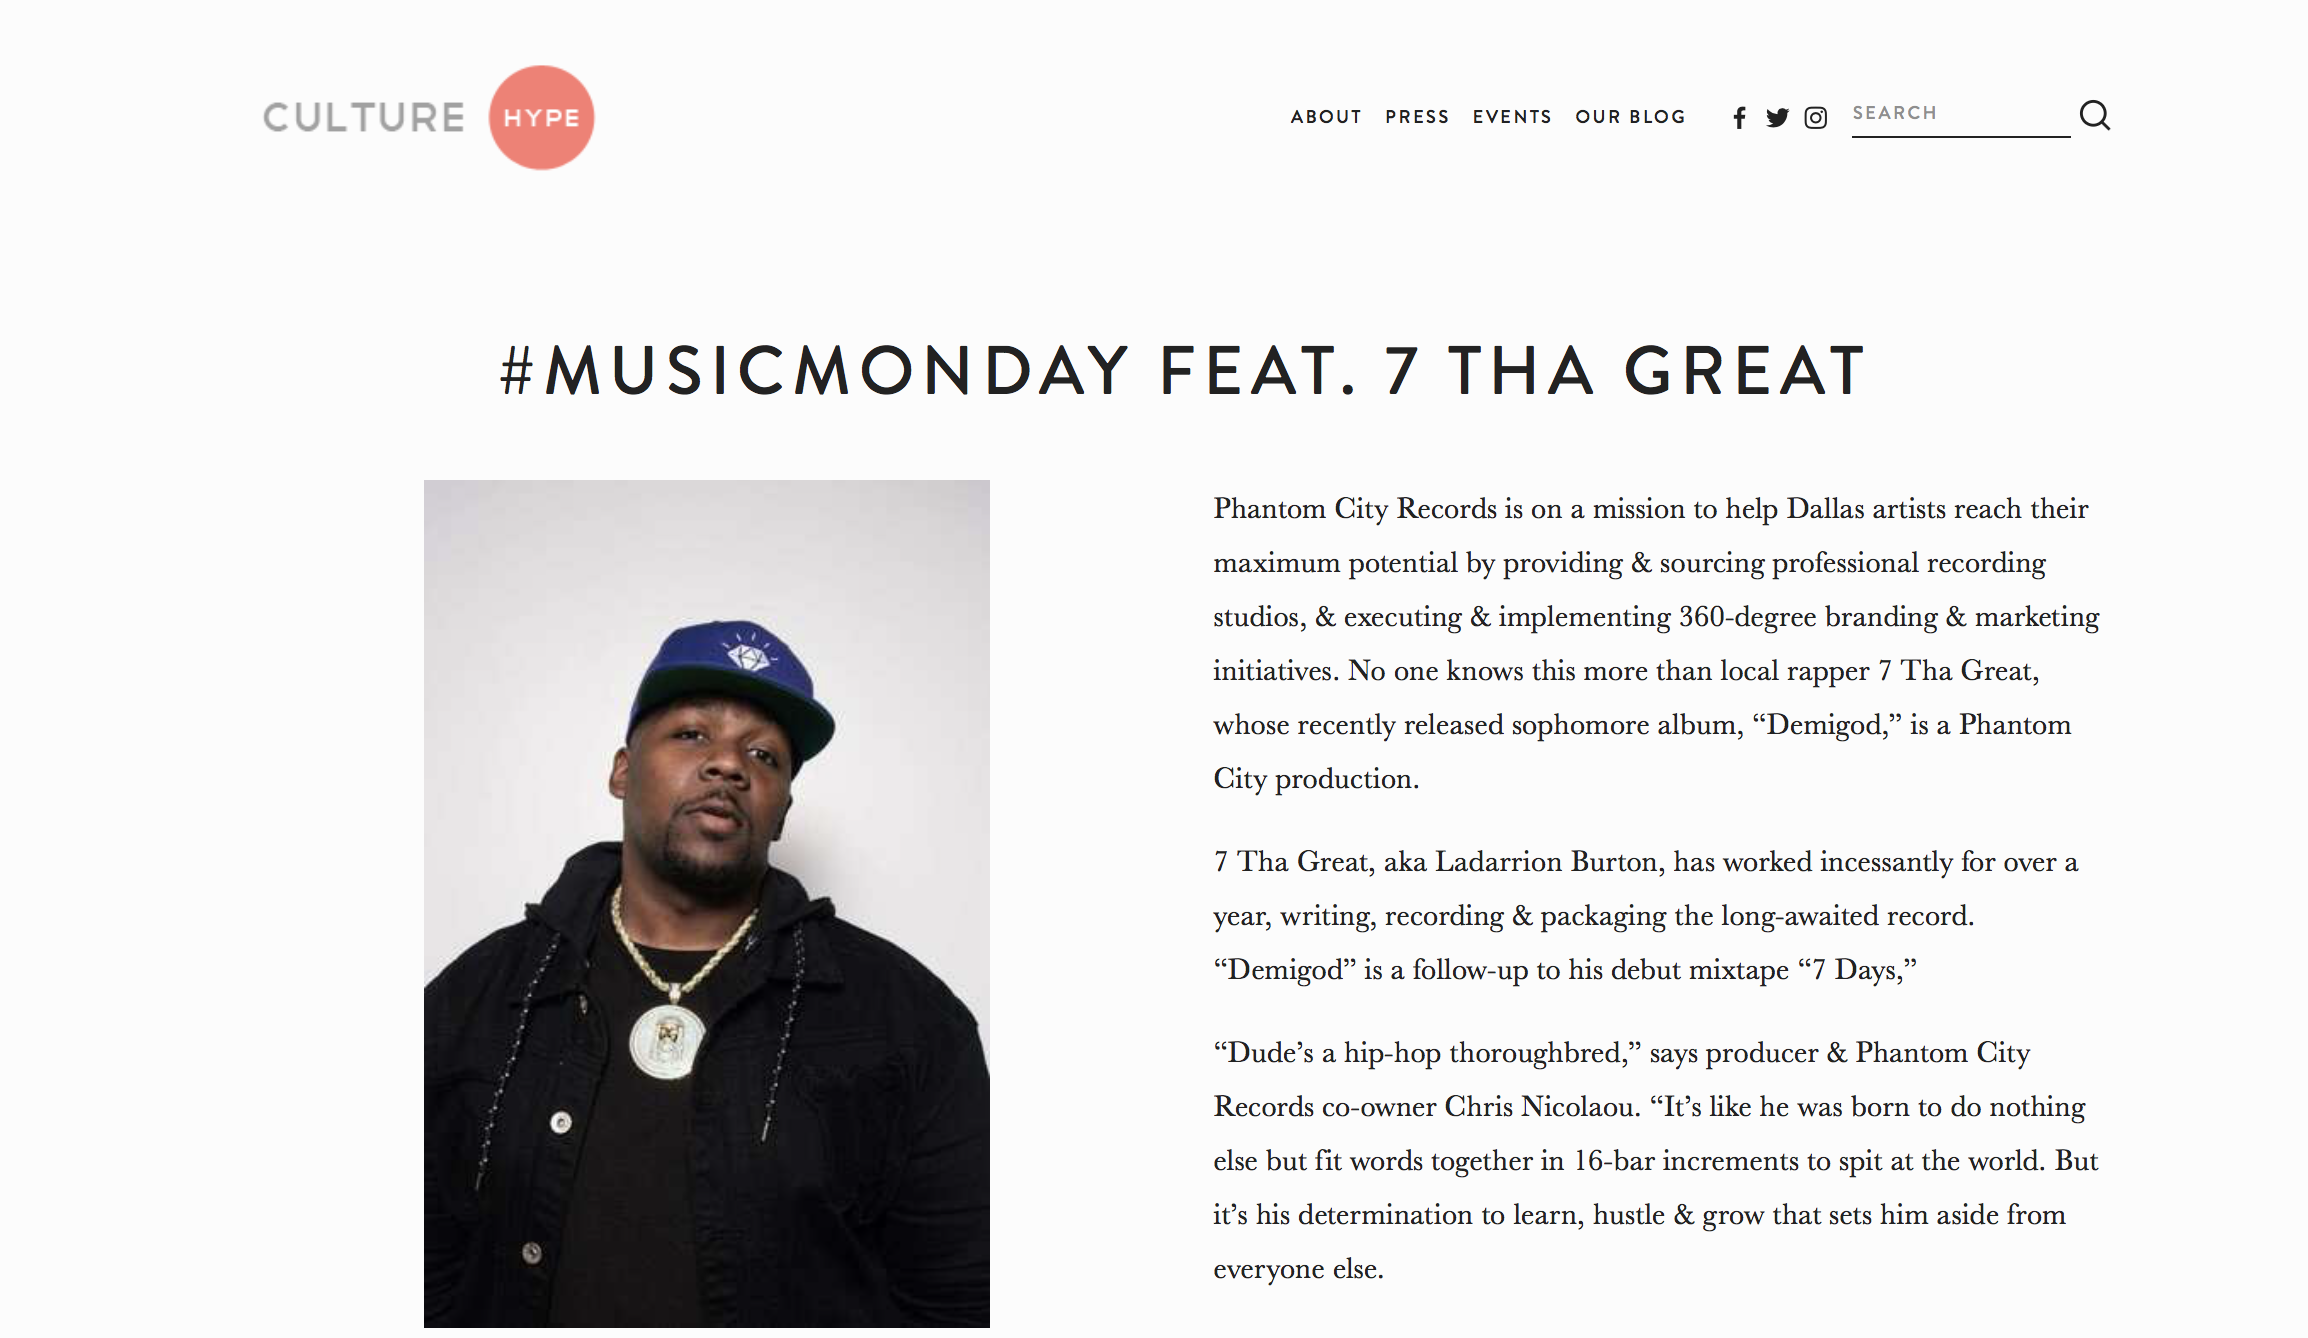 Read full article www.culture-hype.com/all-blog-posts/2019/2/20/musicmonday-feat-7-tha-great